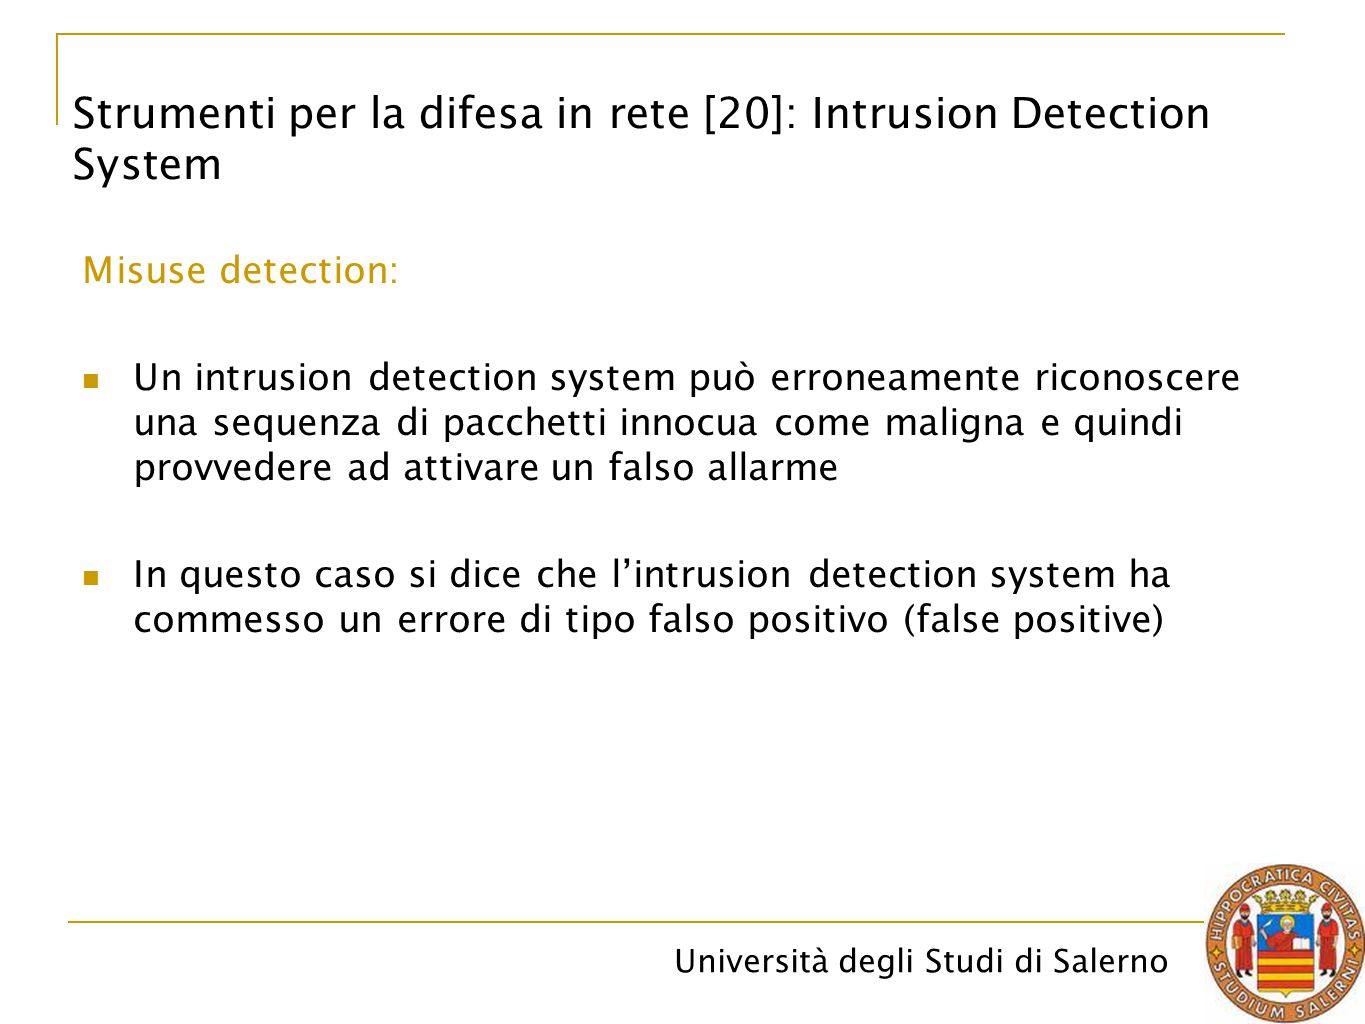 Università degli Studi di Salerno Misuse detection: Un intrusion detection system può erroneamente riconoscere una sequenza di pacchetti innocua come maligna e quindi provvedere ad attivare un falso allarme In questo caso si dice che l'intrusion detection system ha commesso un errore di tipo falso positivo (false positive) Strumenti per la difesa in rete [20]: Intrusion Detection System